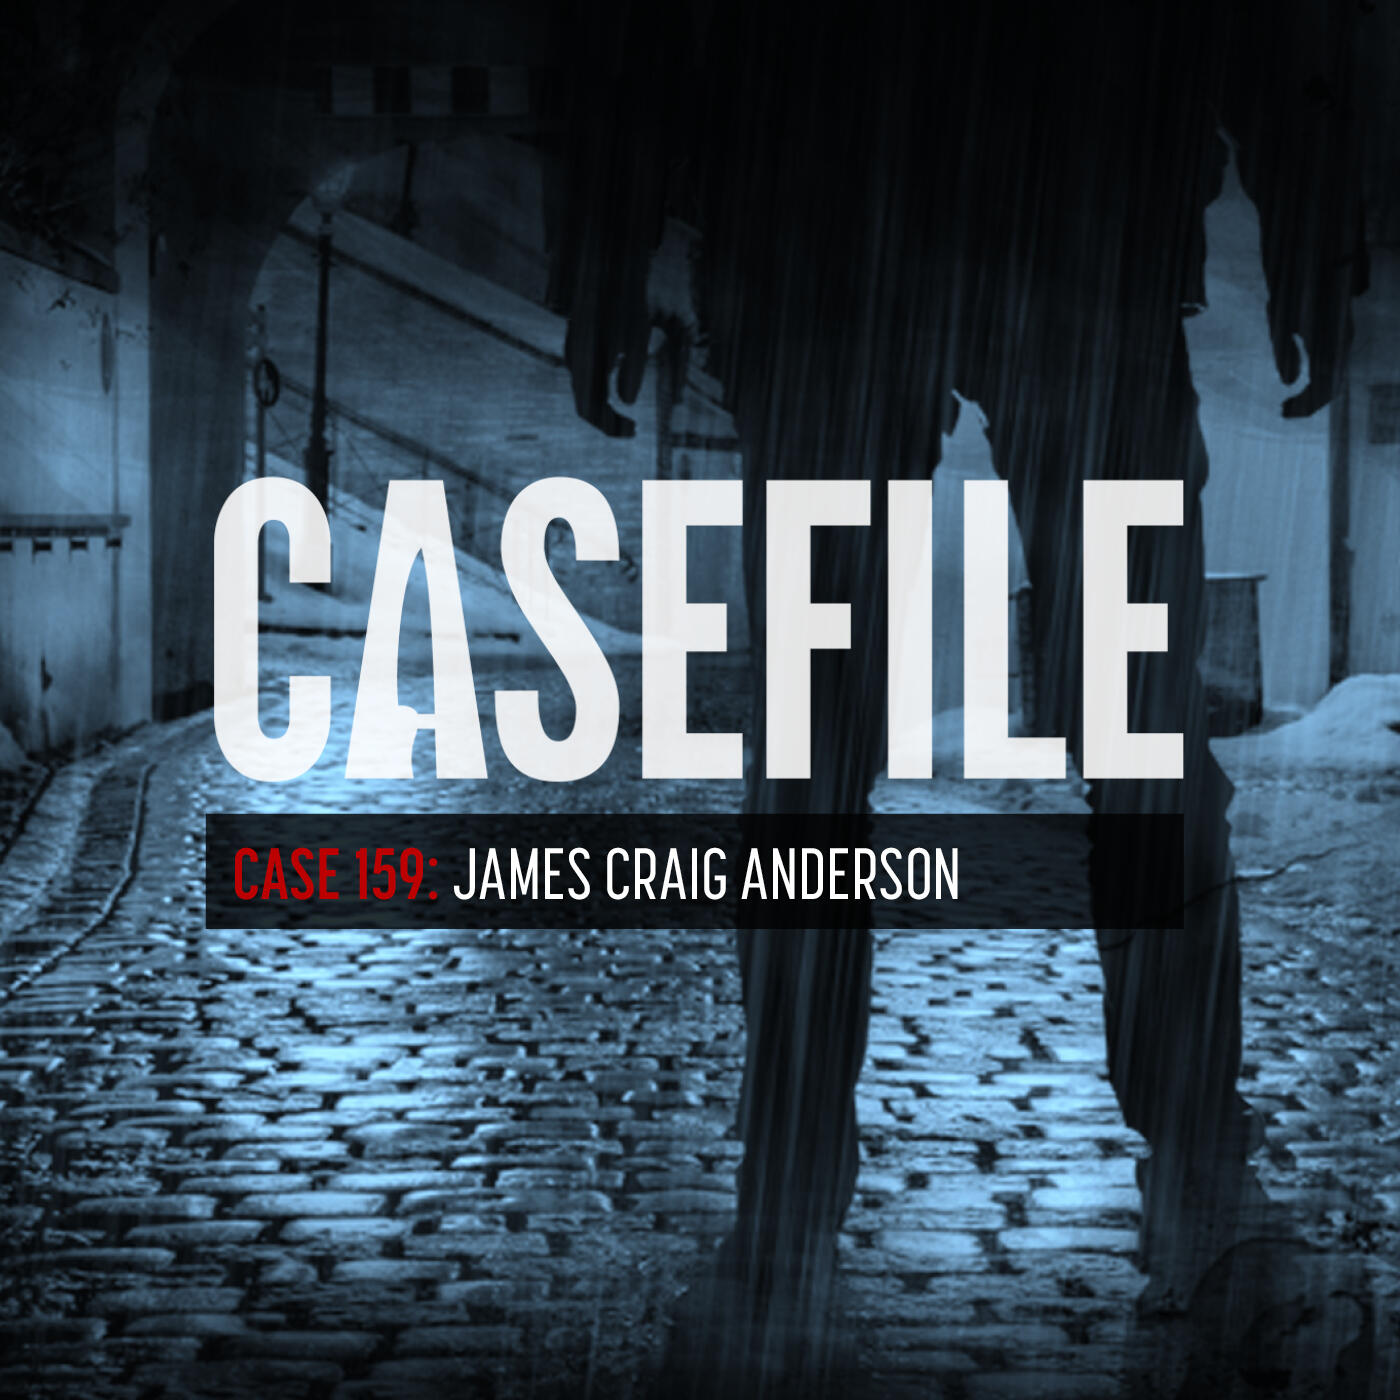 Case 159: James Craig Anderson